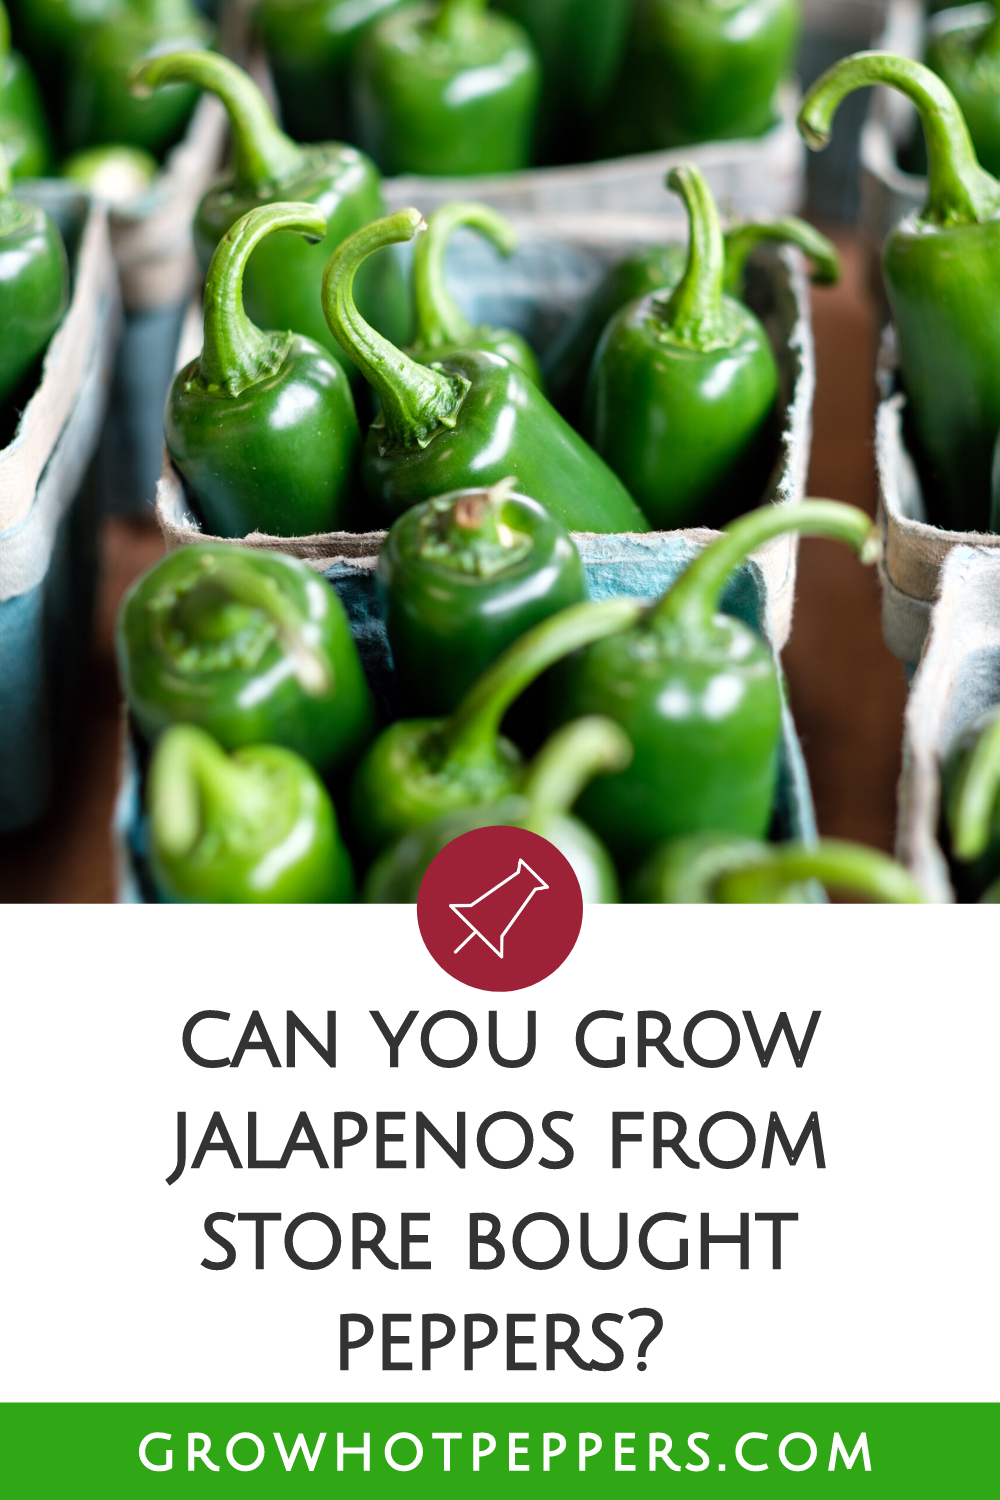 Jalapeno Seeds: Can You Grow Jalapenos from Store Bought Peppers?